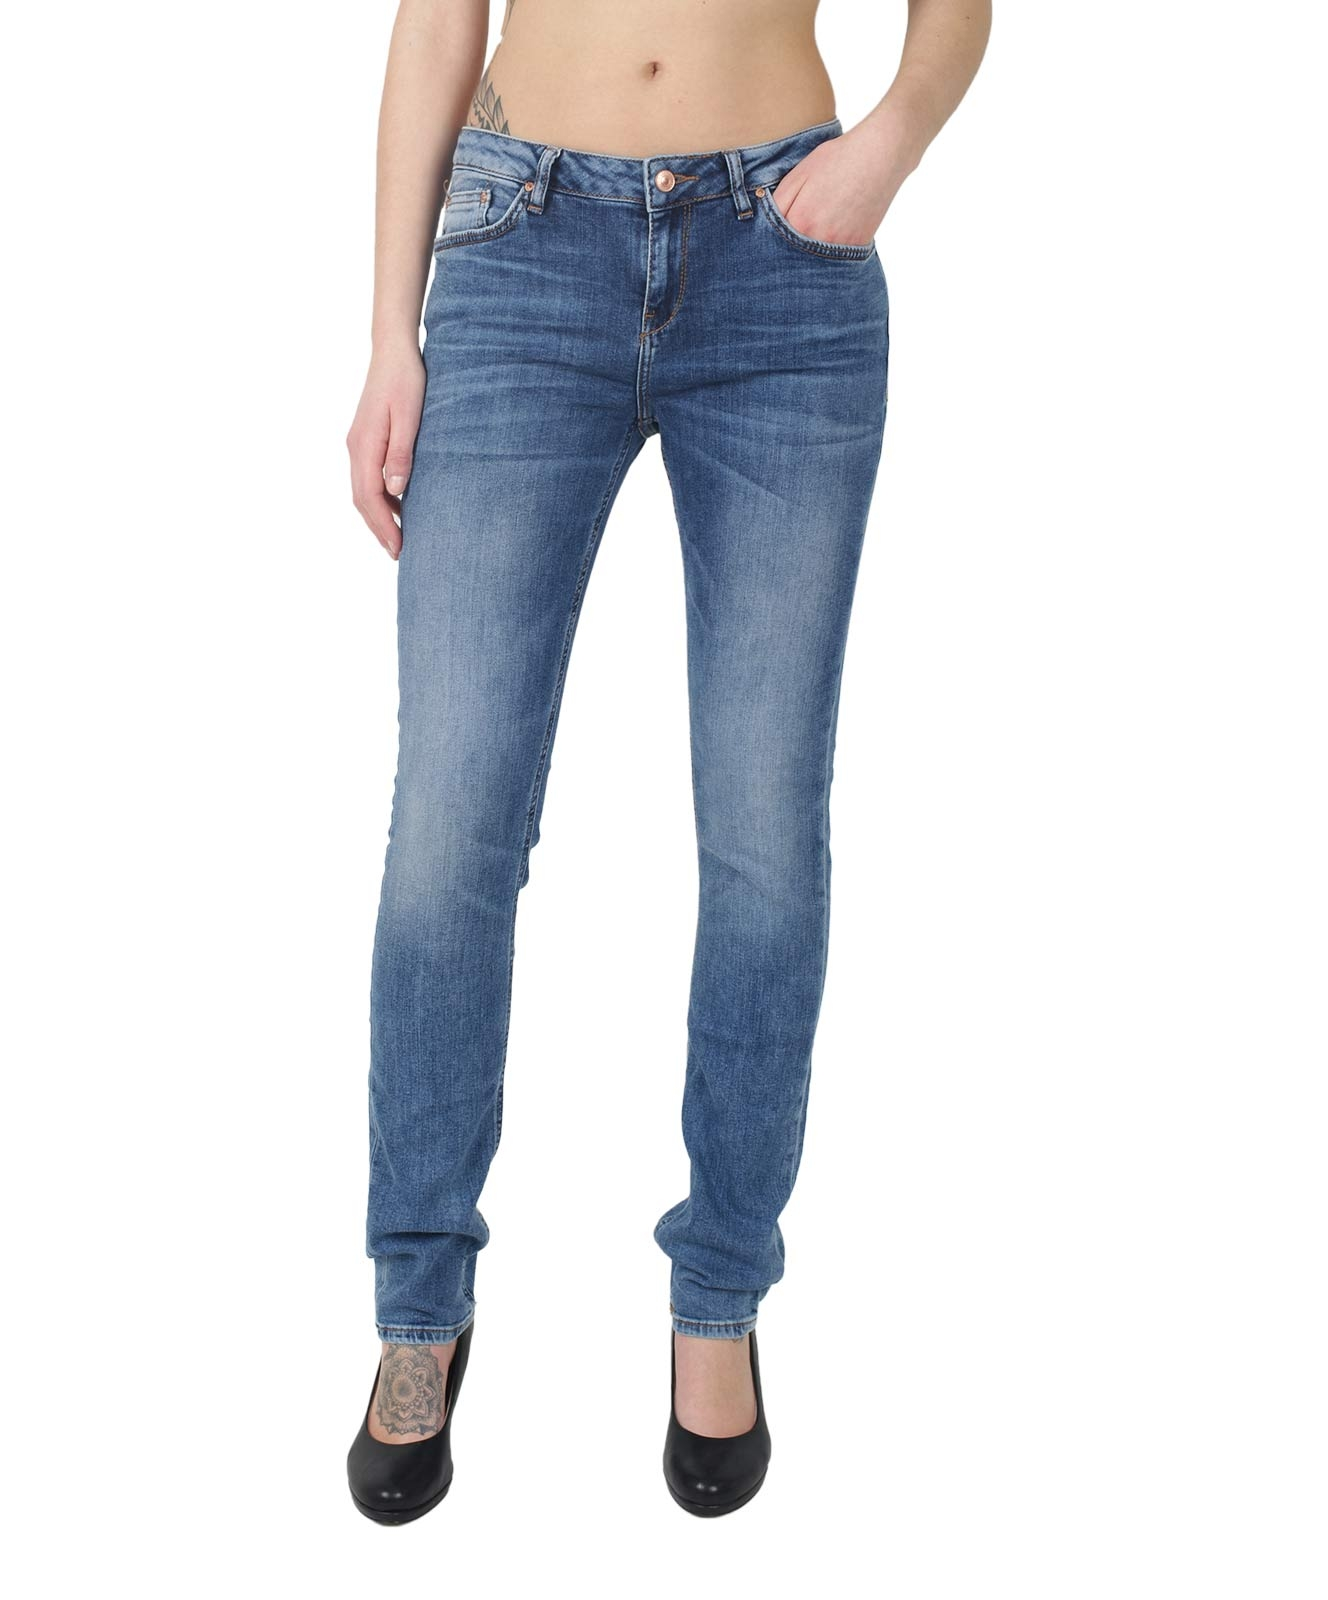 Hosen - LTB Ankle Jeans Lonia in Sior Undamaged Wash  - Onlineshop Jeans Meile